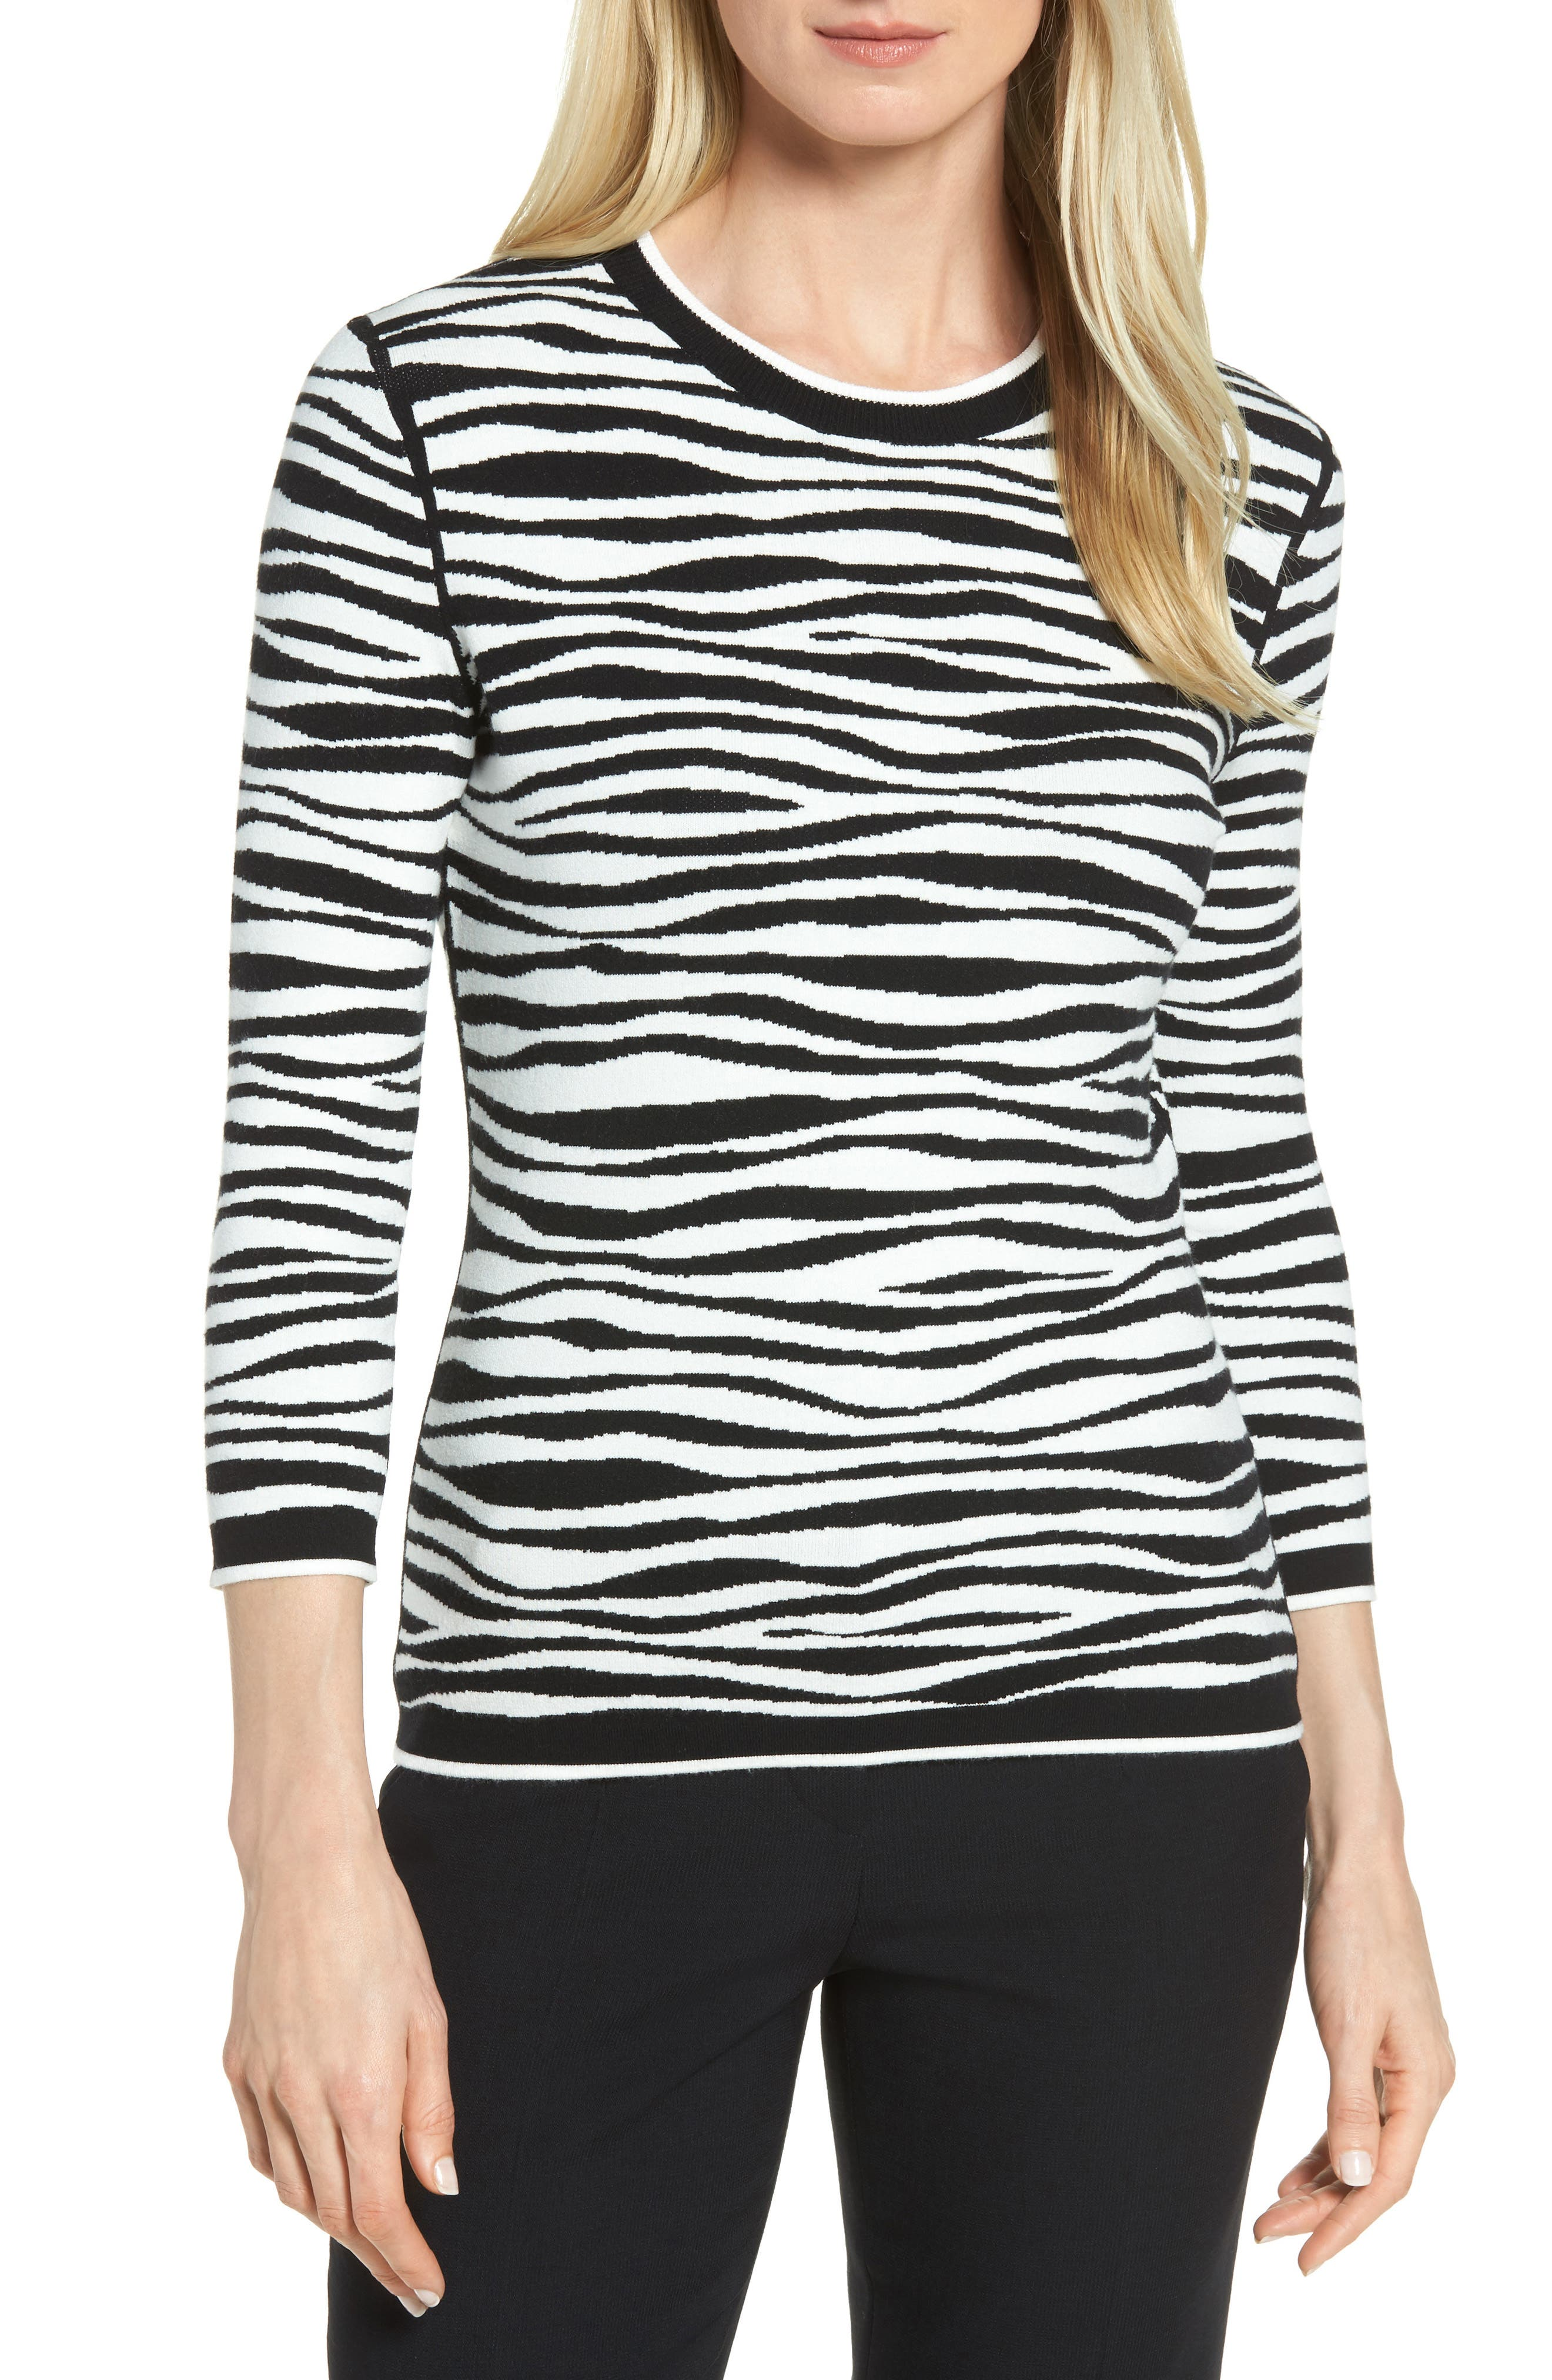 Main Image - BOSS Fatima Zebra Stripe Sweater